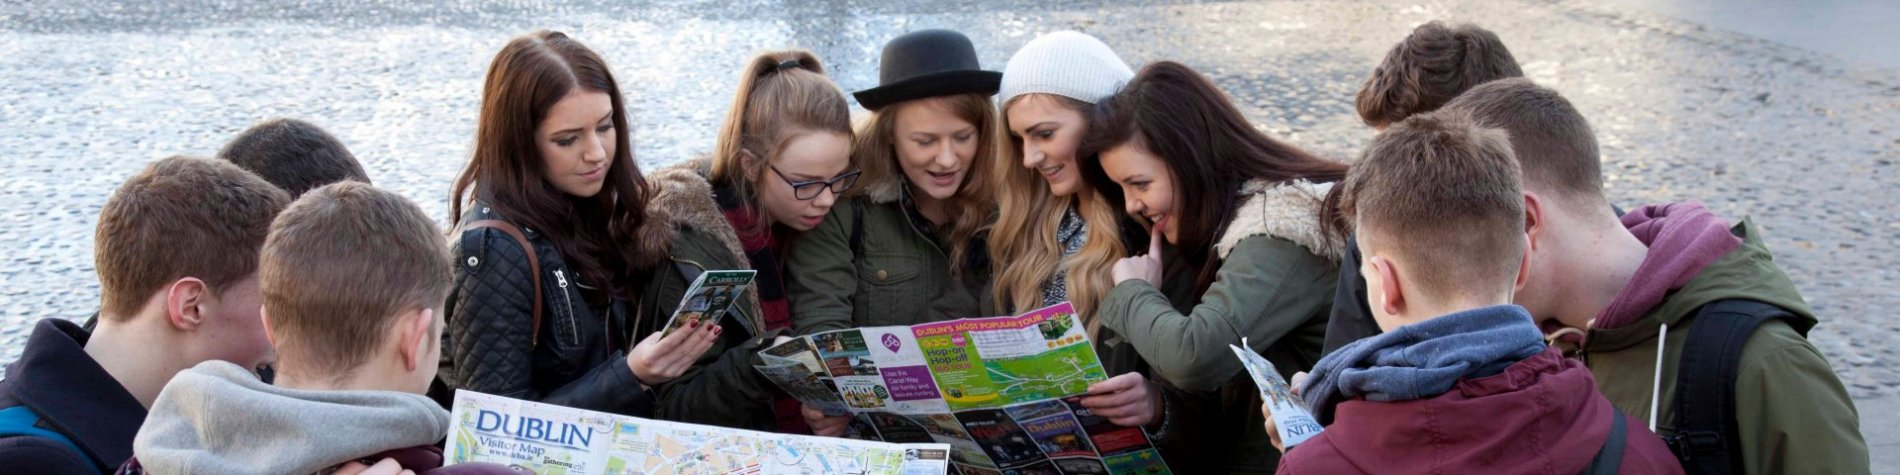 Group of students on a tour in Ireland with maps and brochures